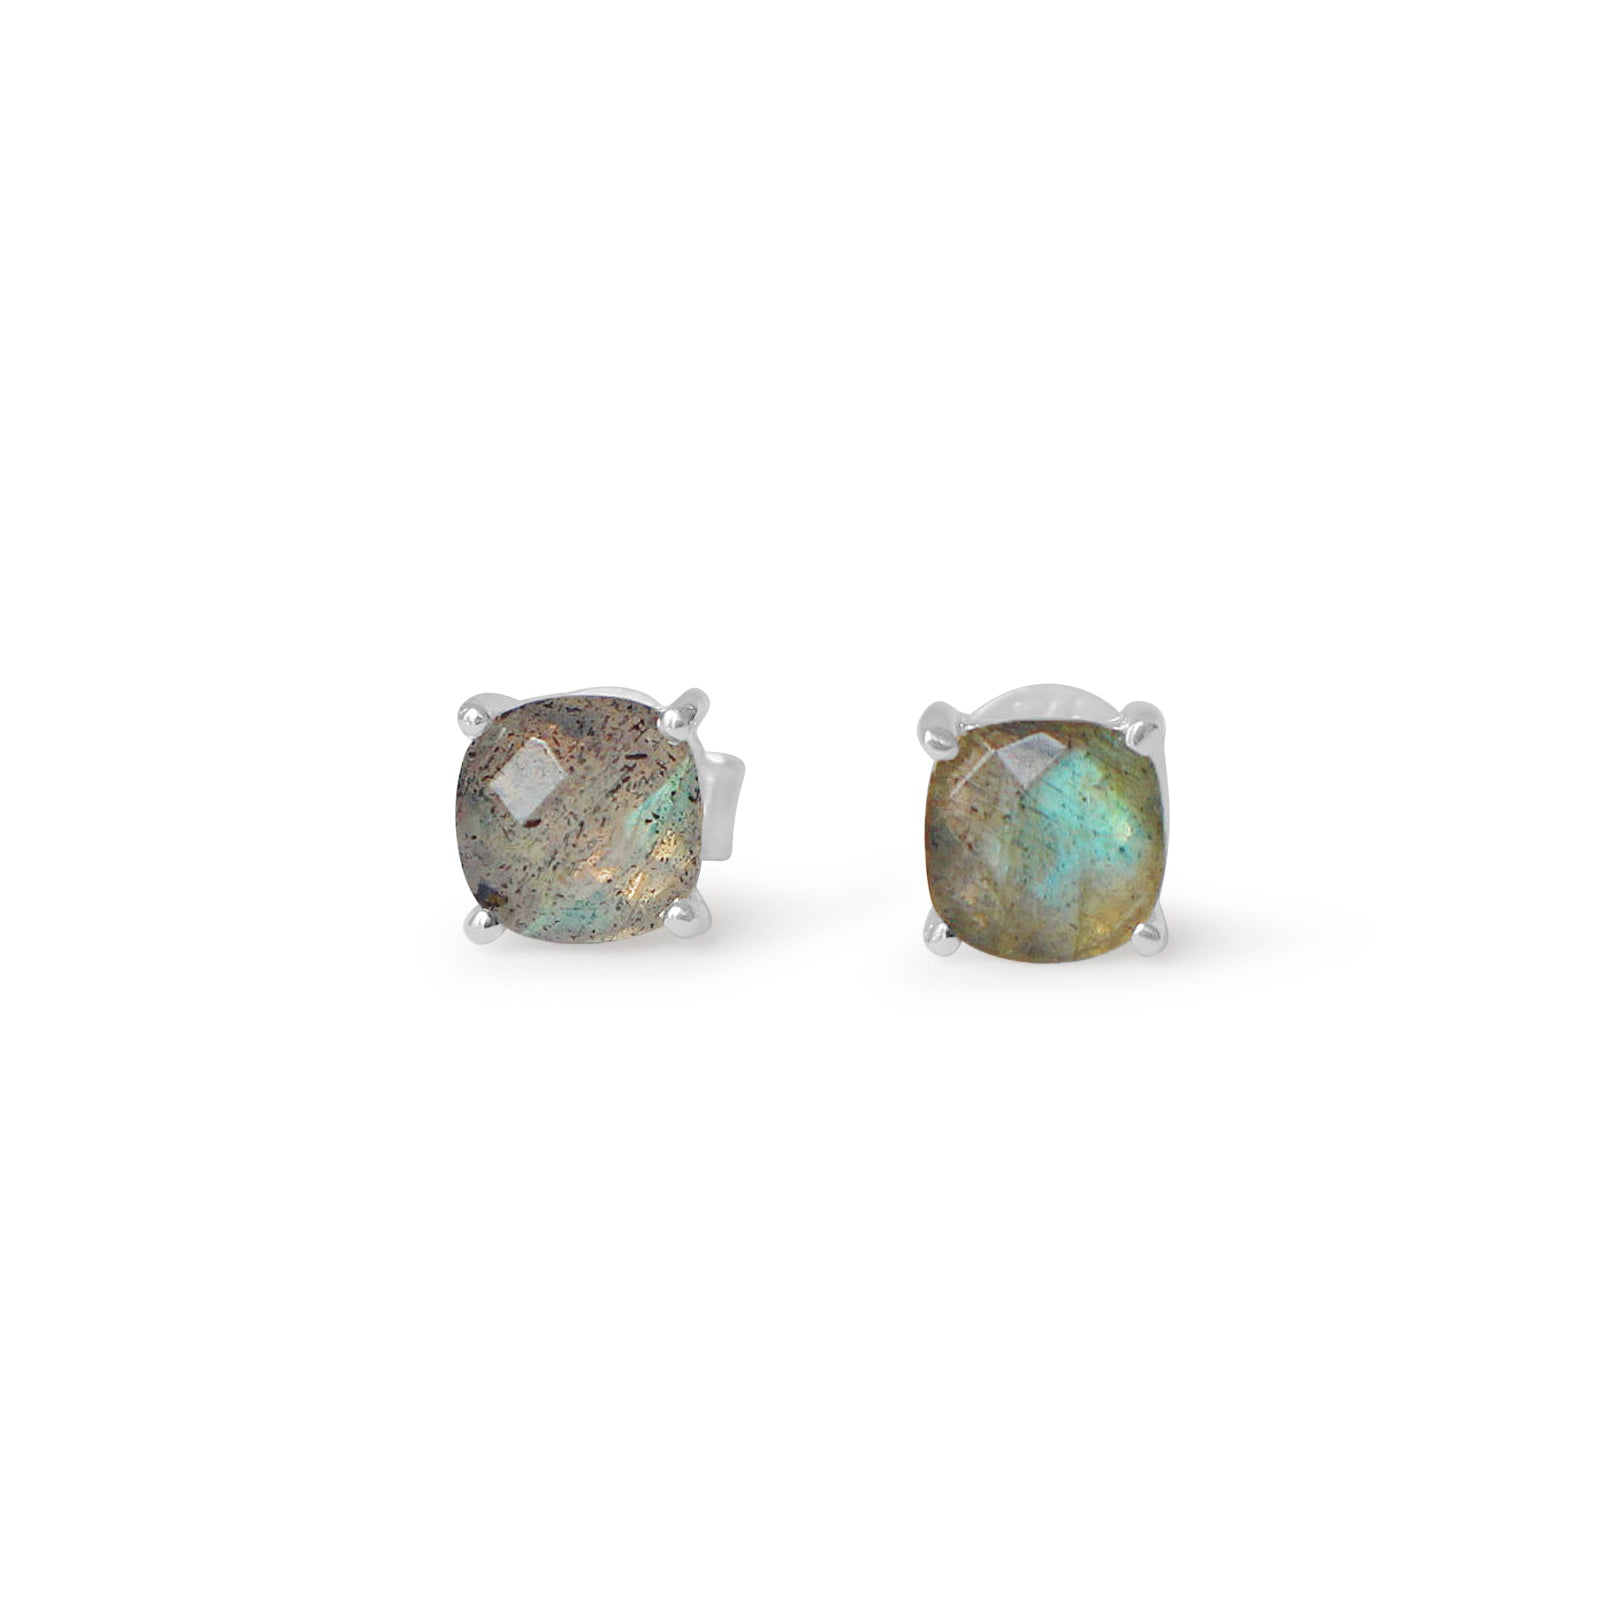 925 Silver Classic Series Earrings - Pamela Studs (Labradorite) - Rose Gold Plated